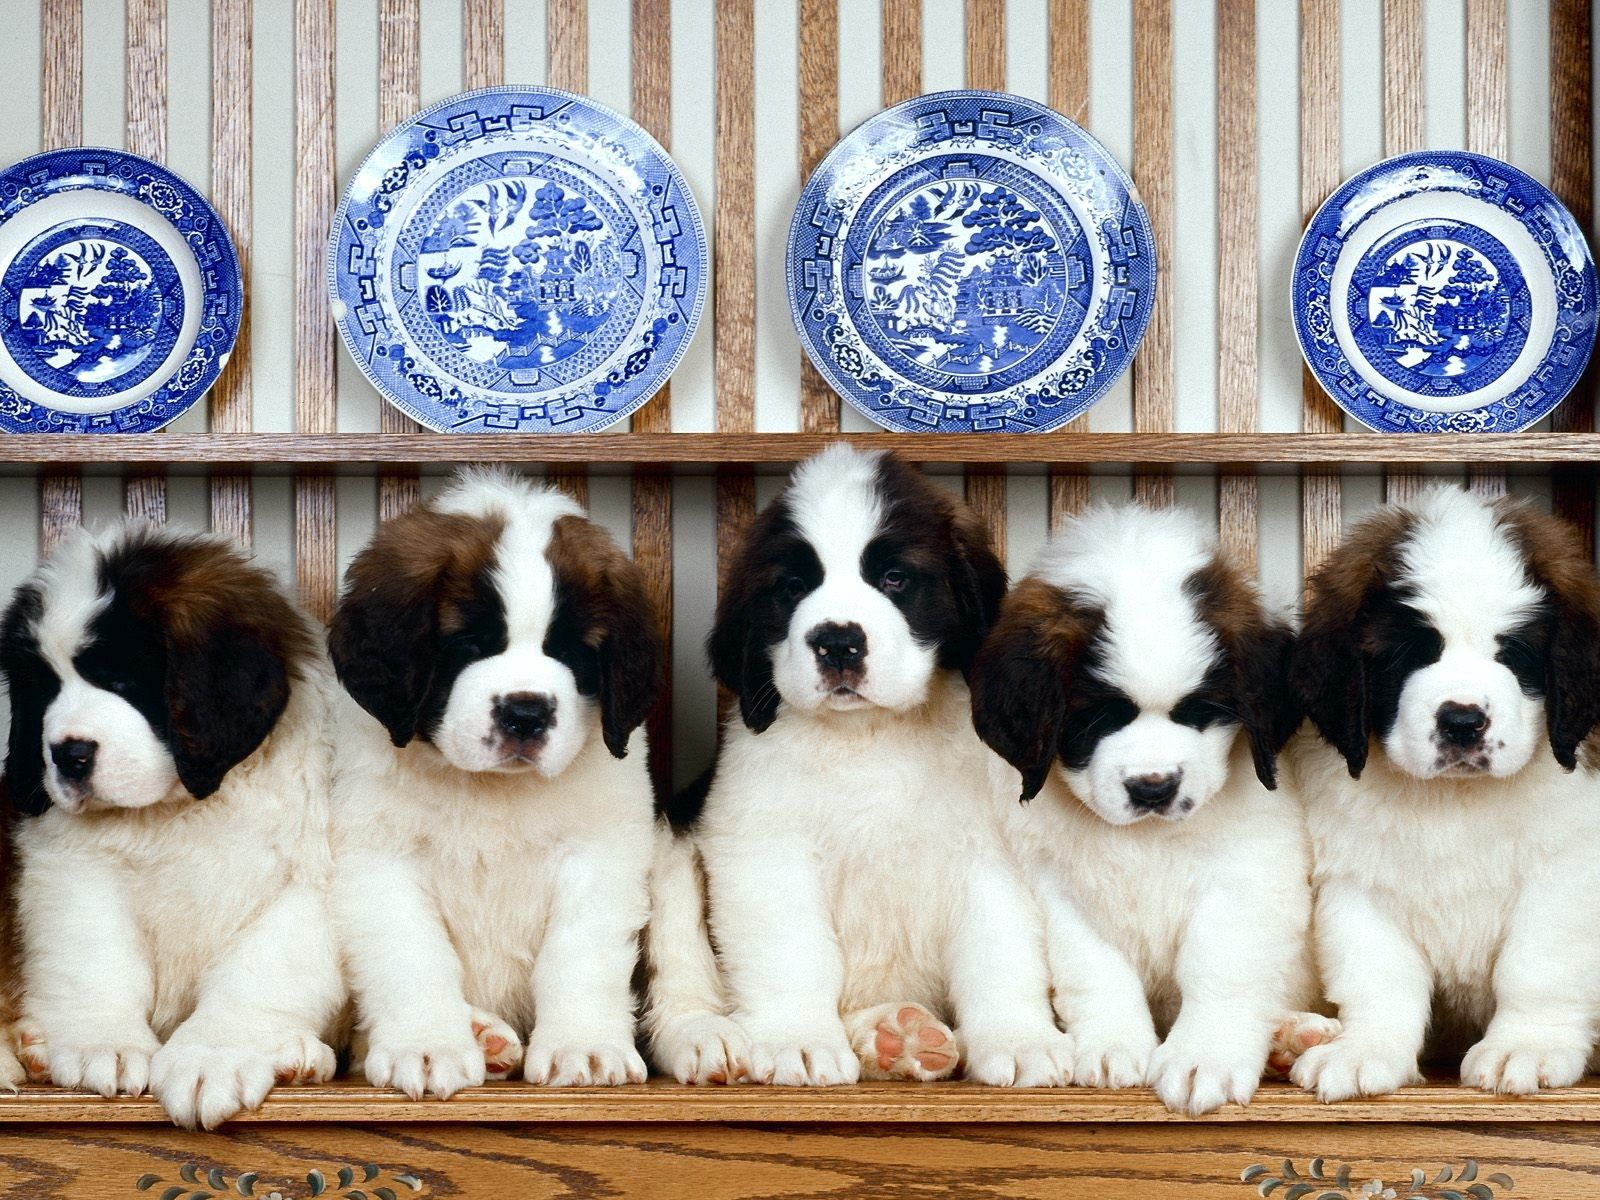 92844 download wallpaper Animals, Tablewares, Puppies, St. Bernard, Plates, Cymbals, St. Bernards, Shelf screensavers and pictures for free